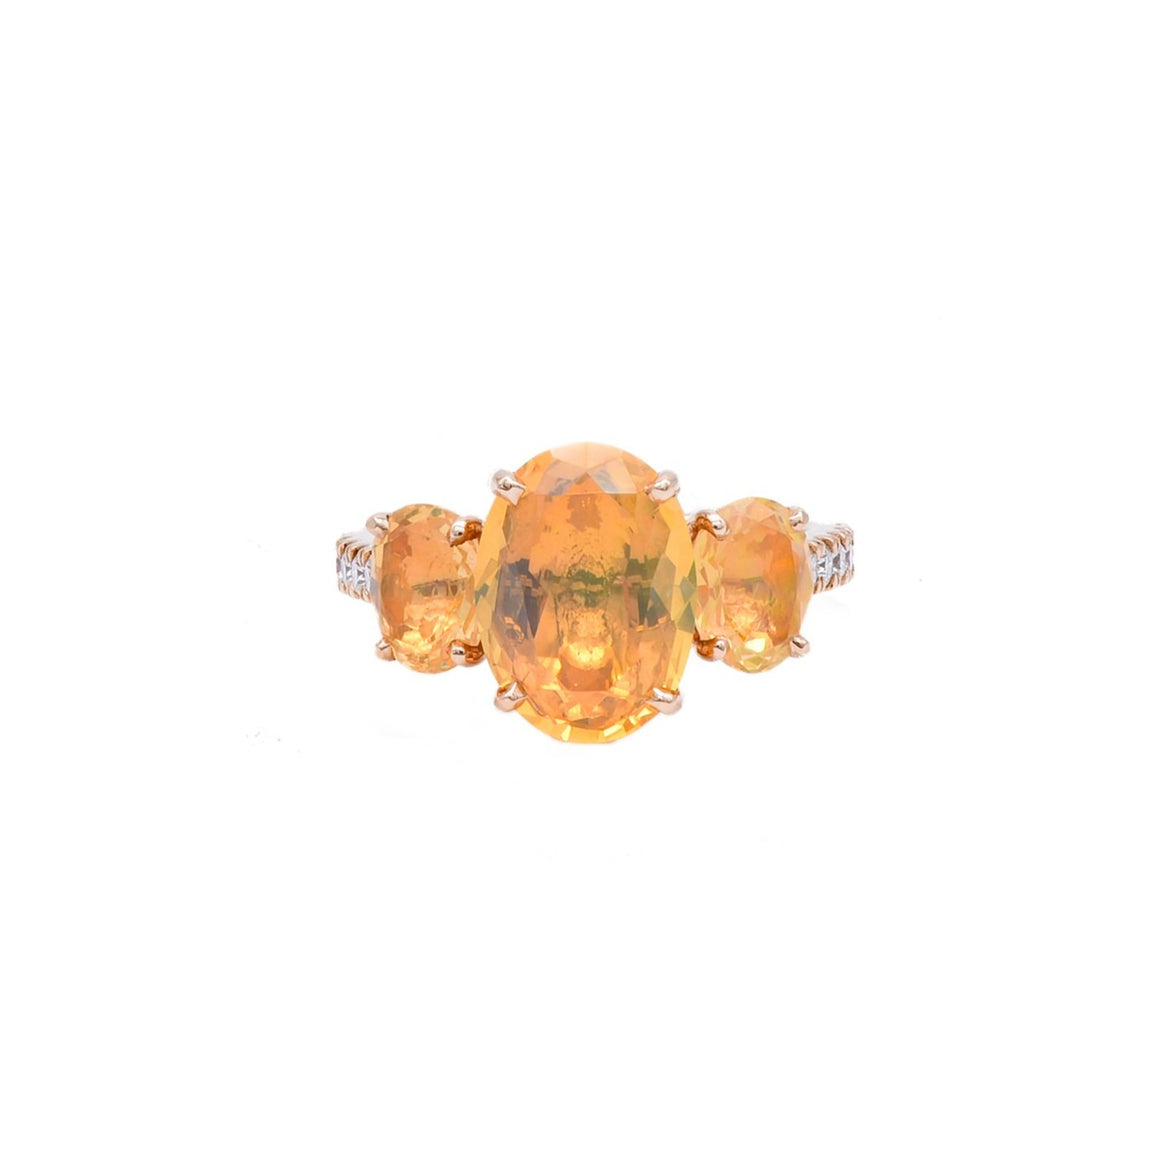 Fire Opal Threestone Ring